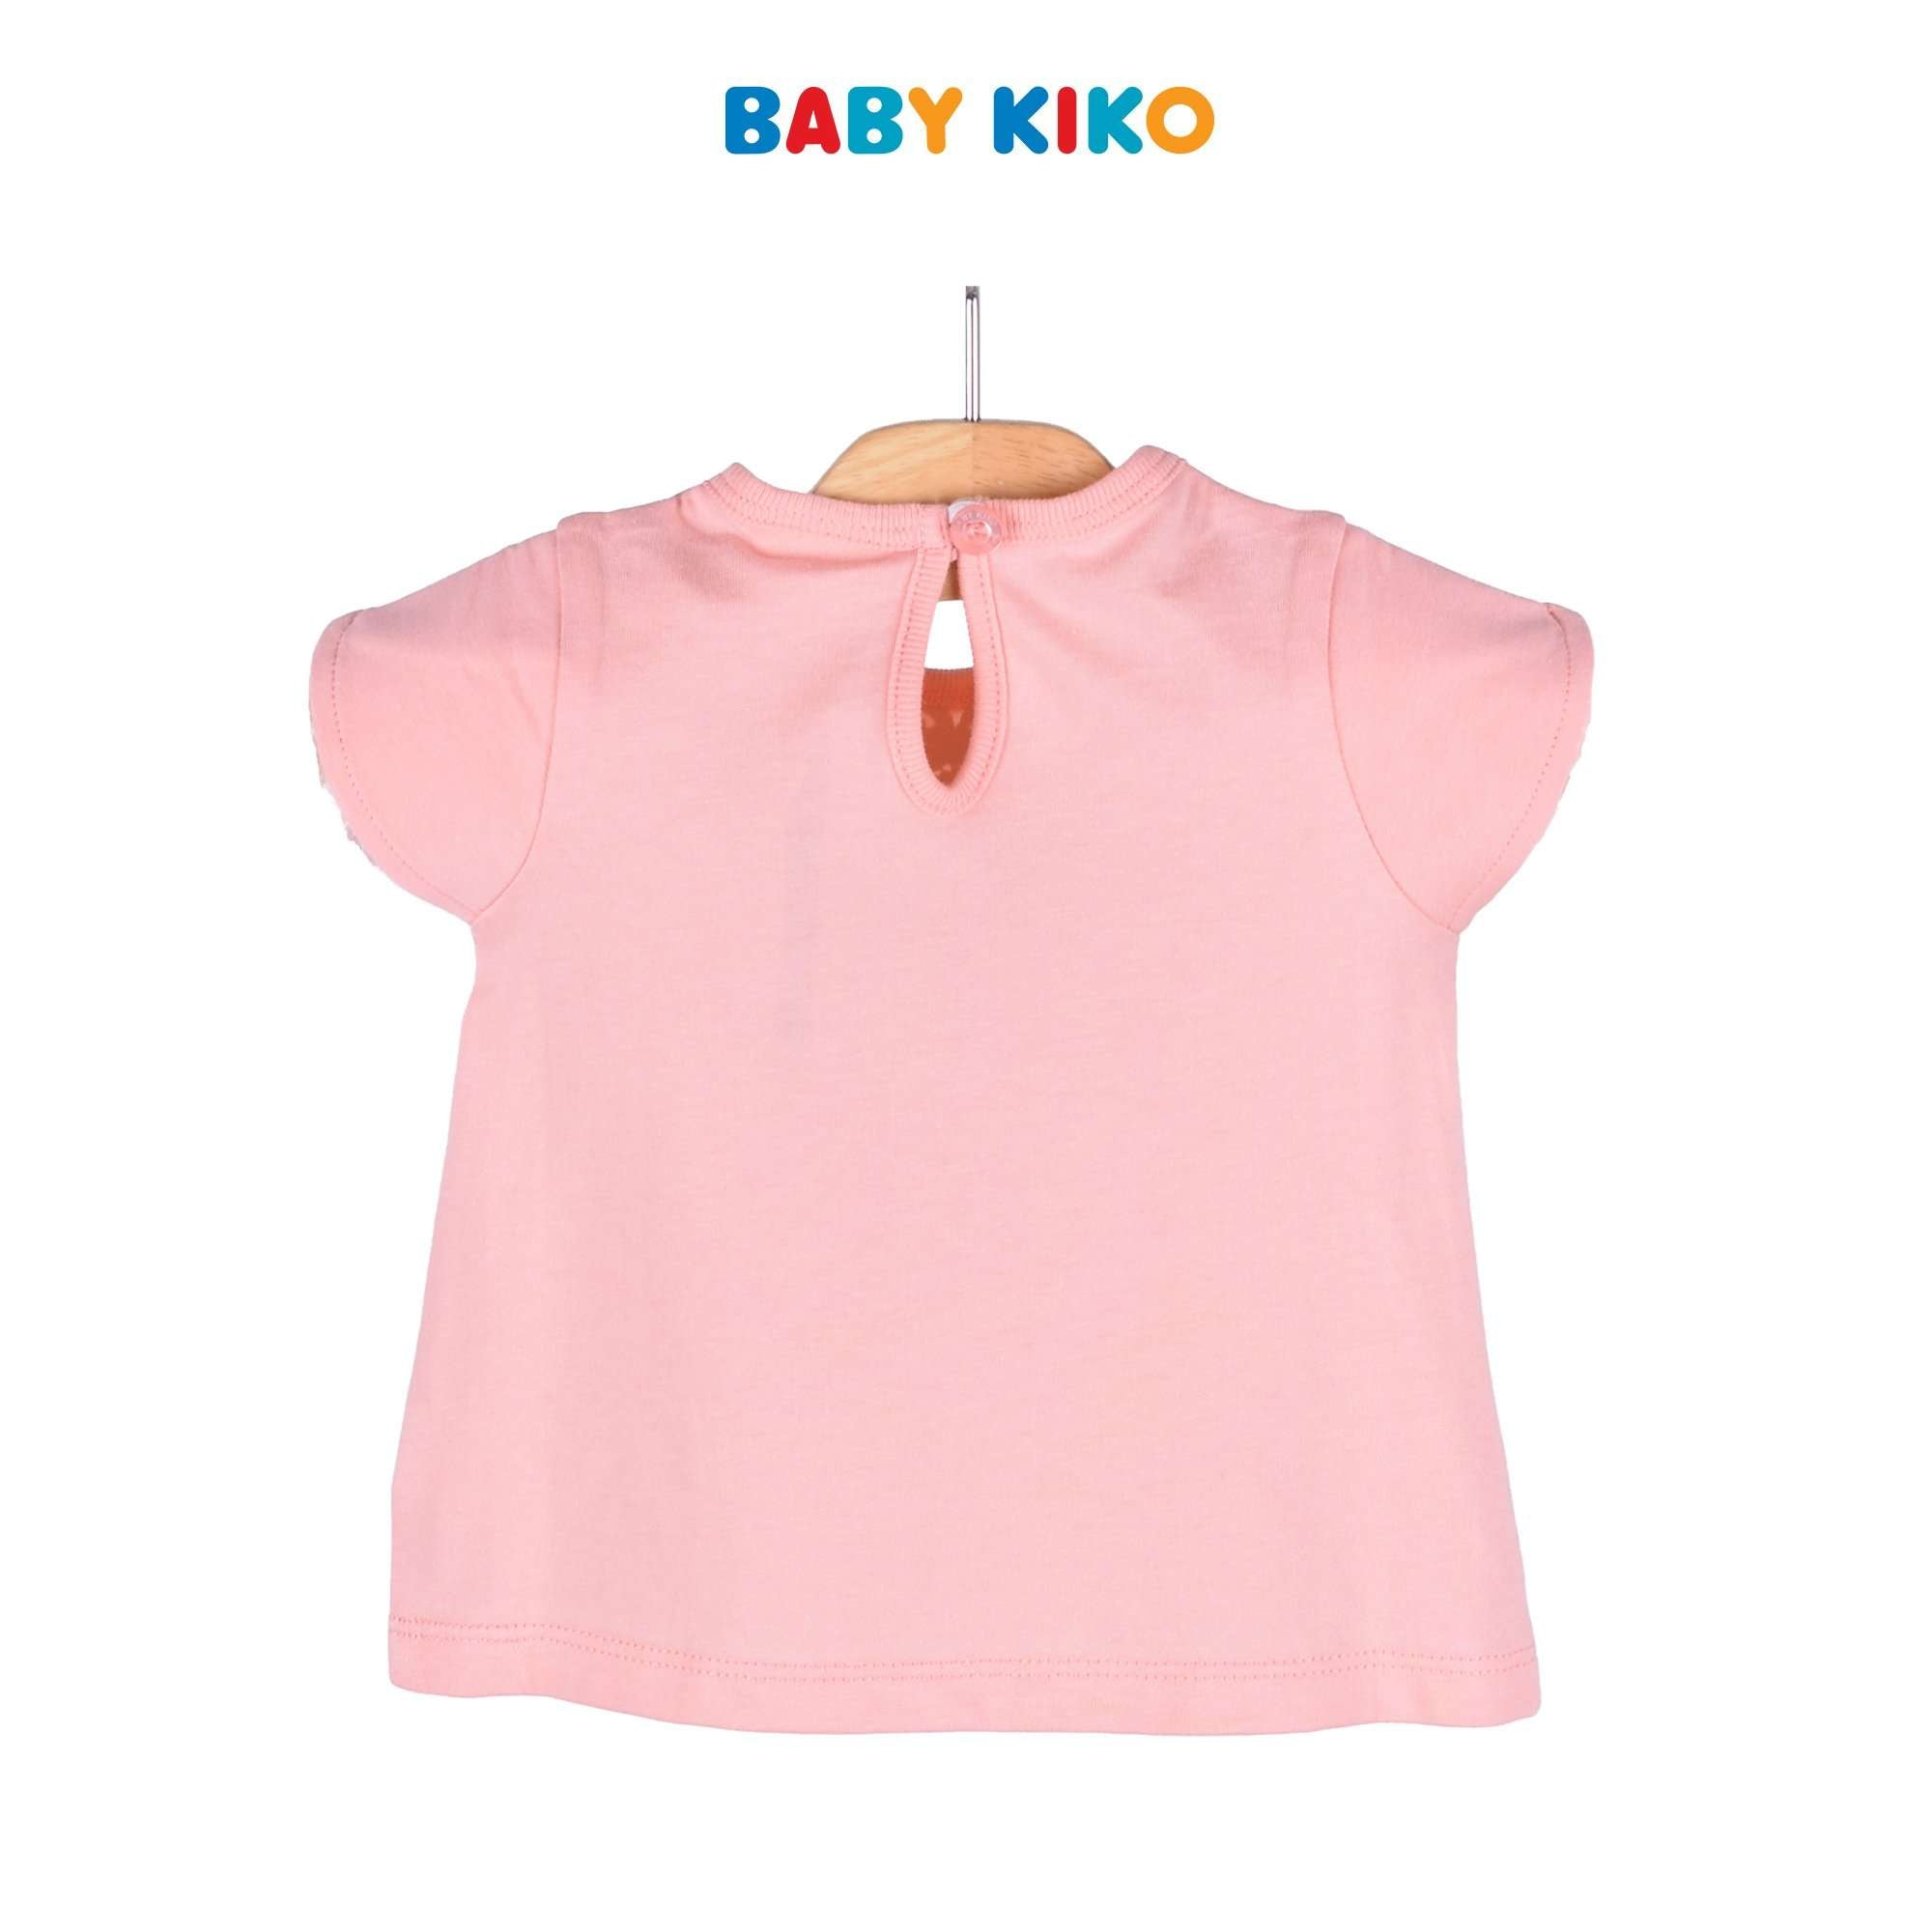 Baby KIKO Baby Girl Short Sleeve Tee Peach Knit 330054-111 : Buy Baby KIKO online at CMG.MY